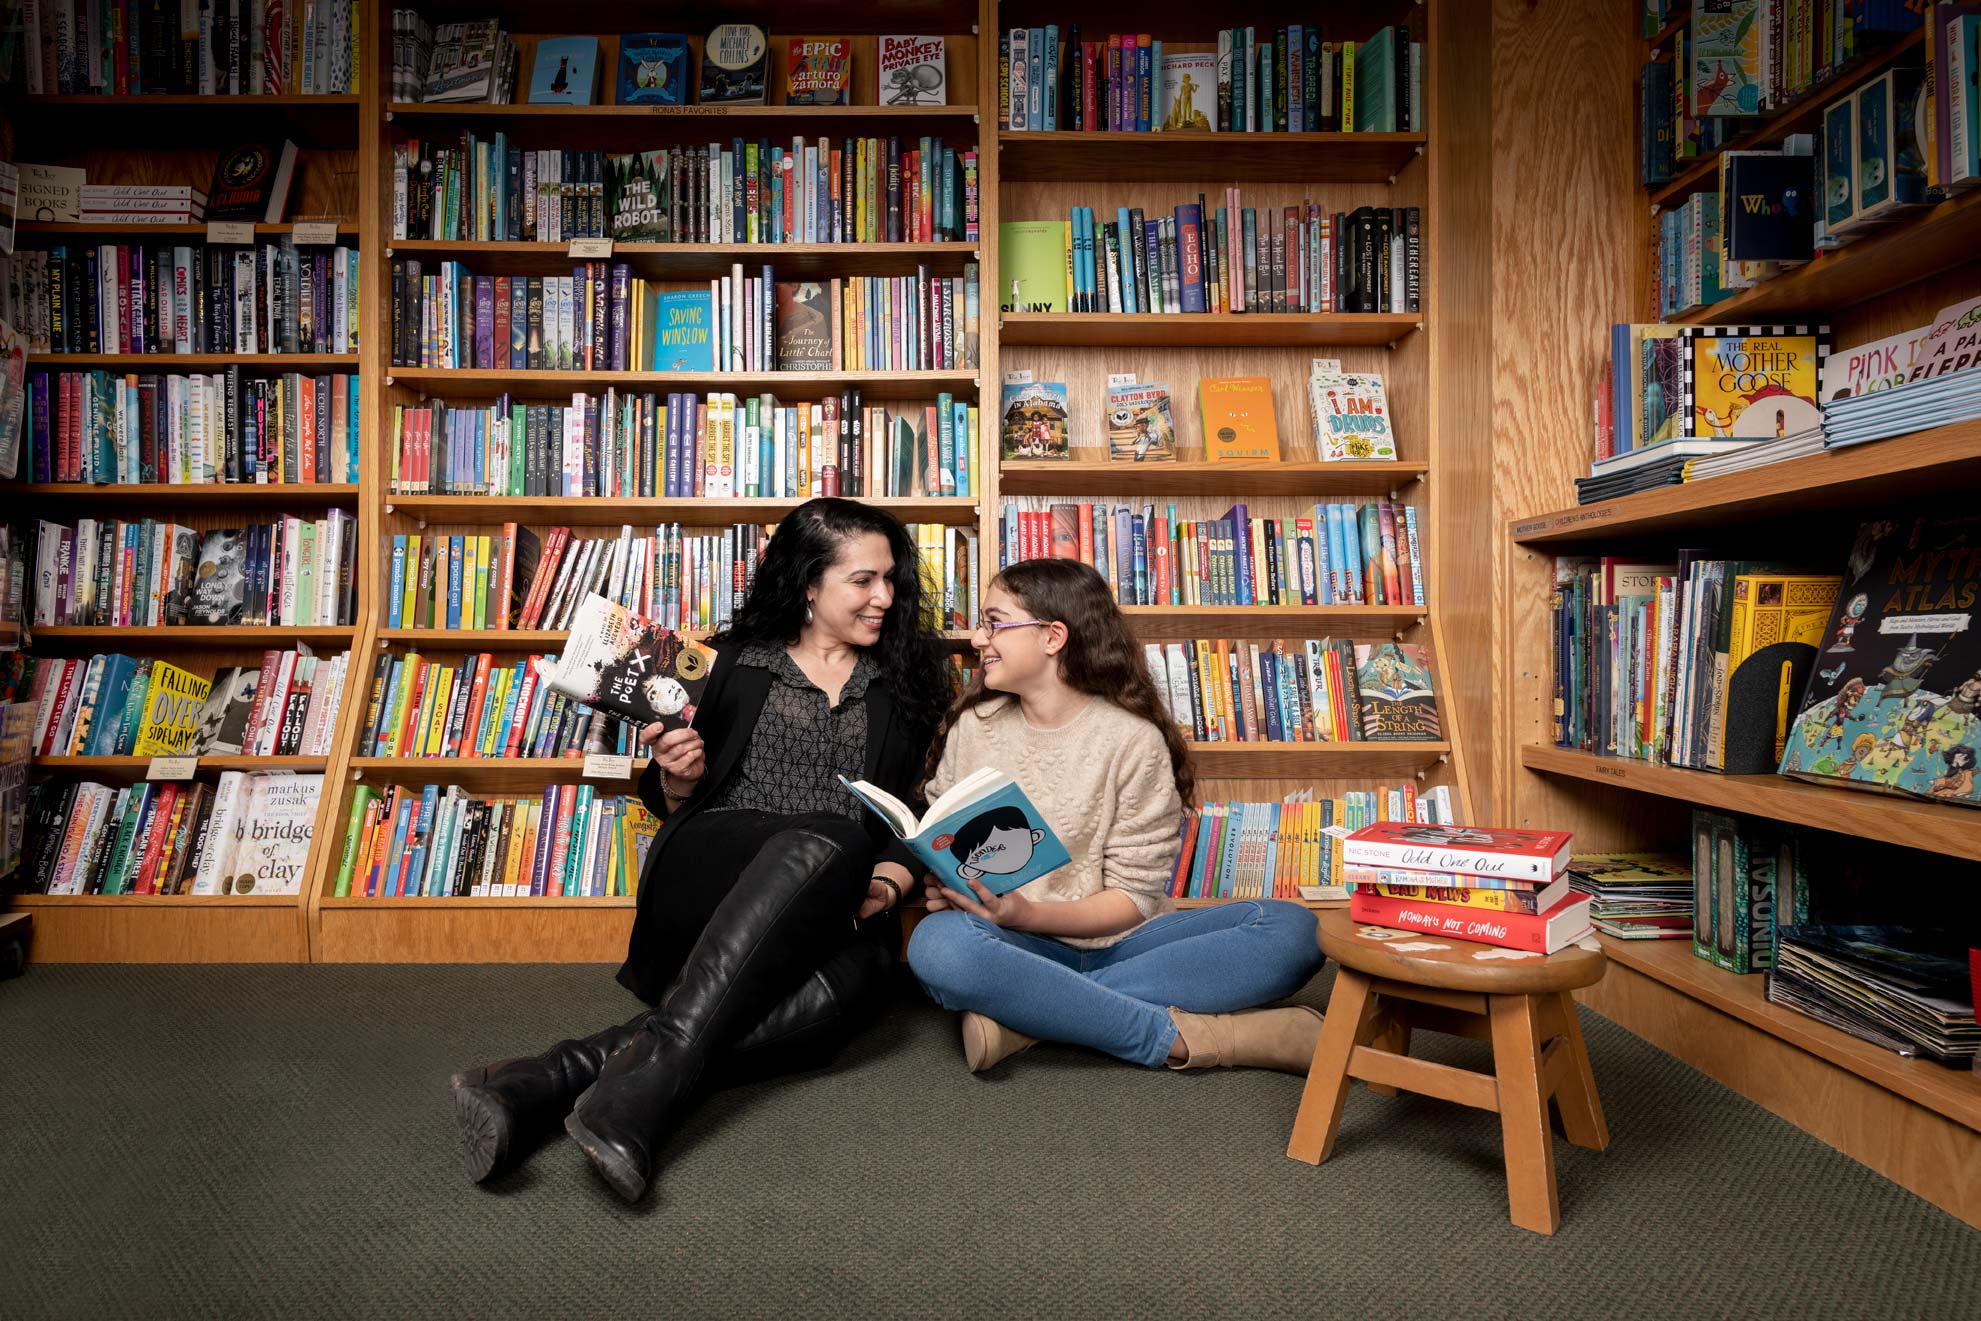 Author Susan Muaddi Darraj and her daughter Miriam, for Baltimore Magazine